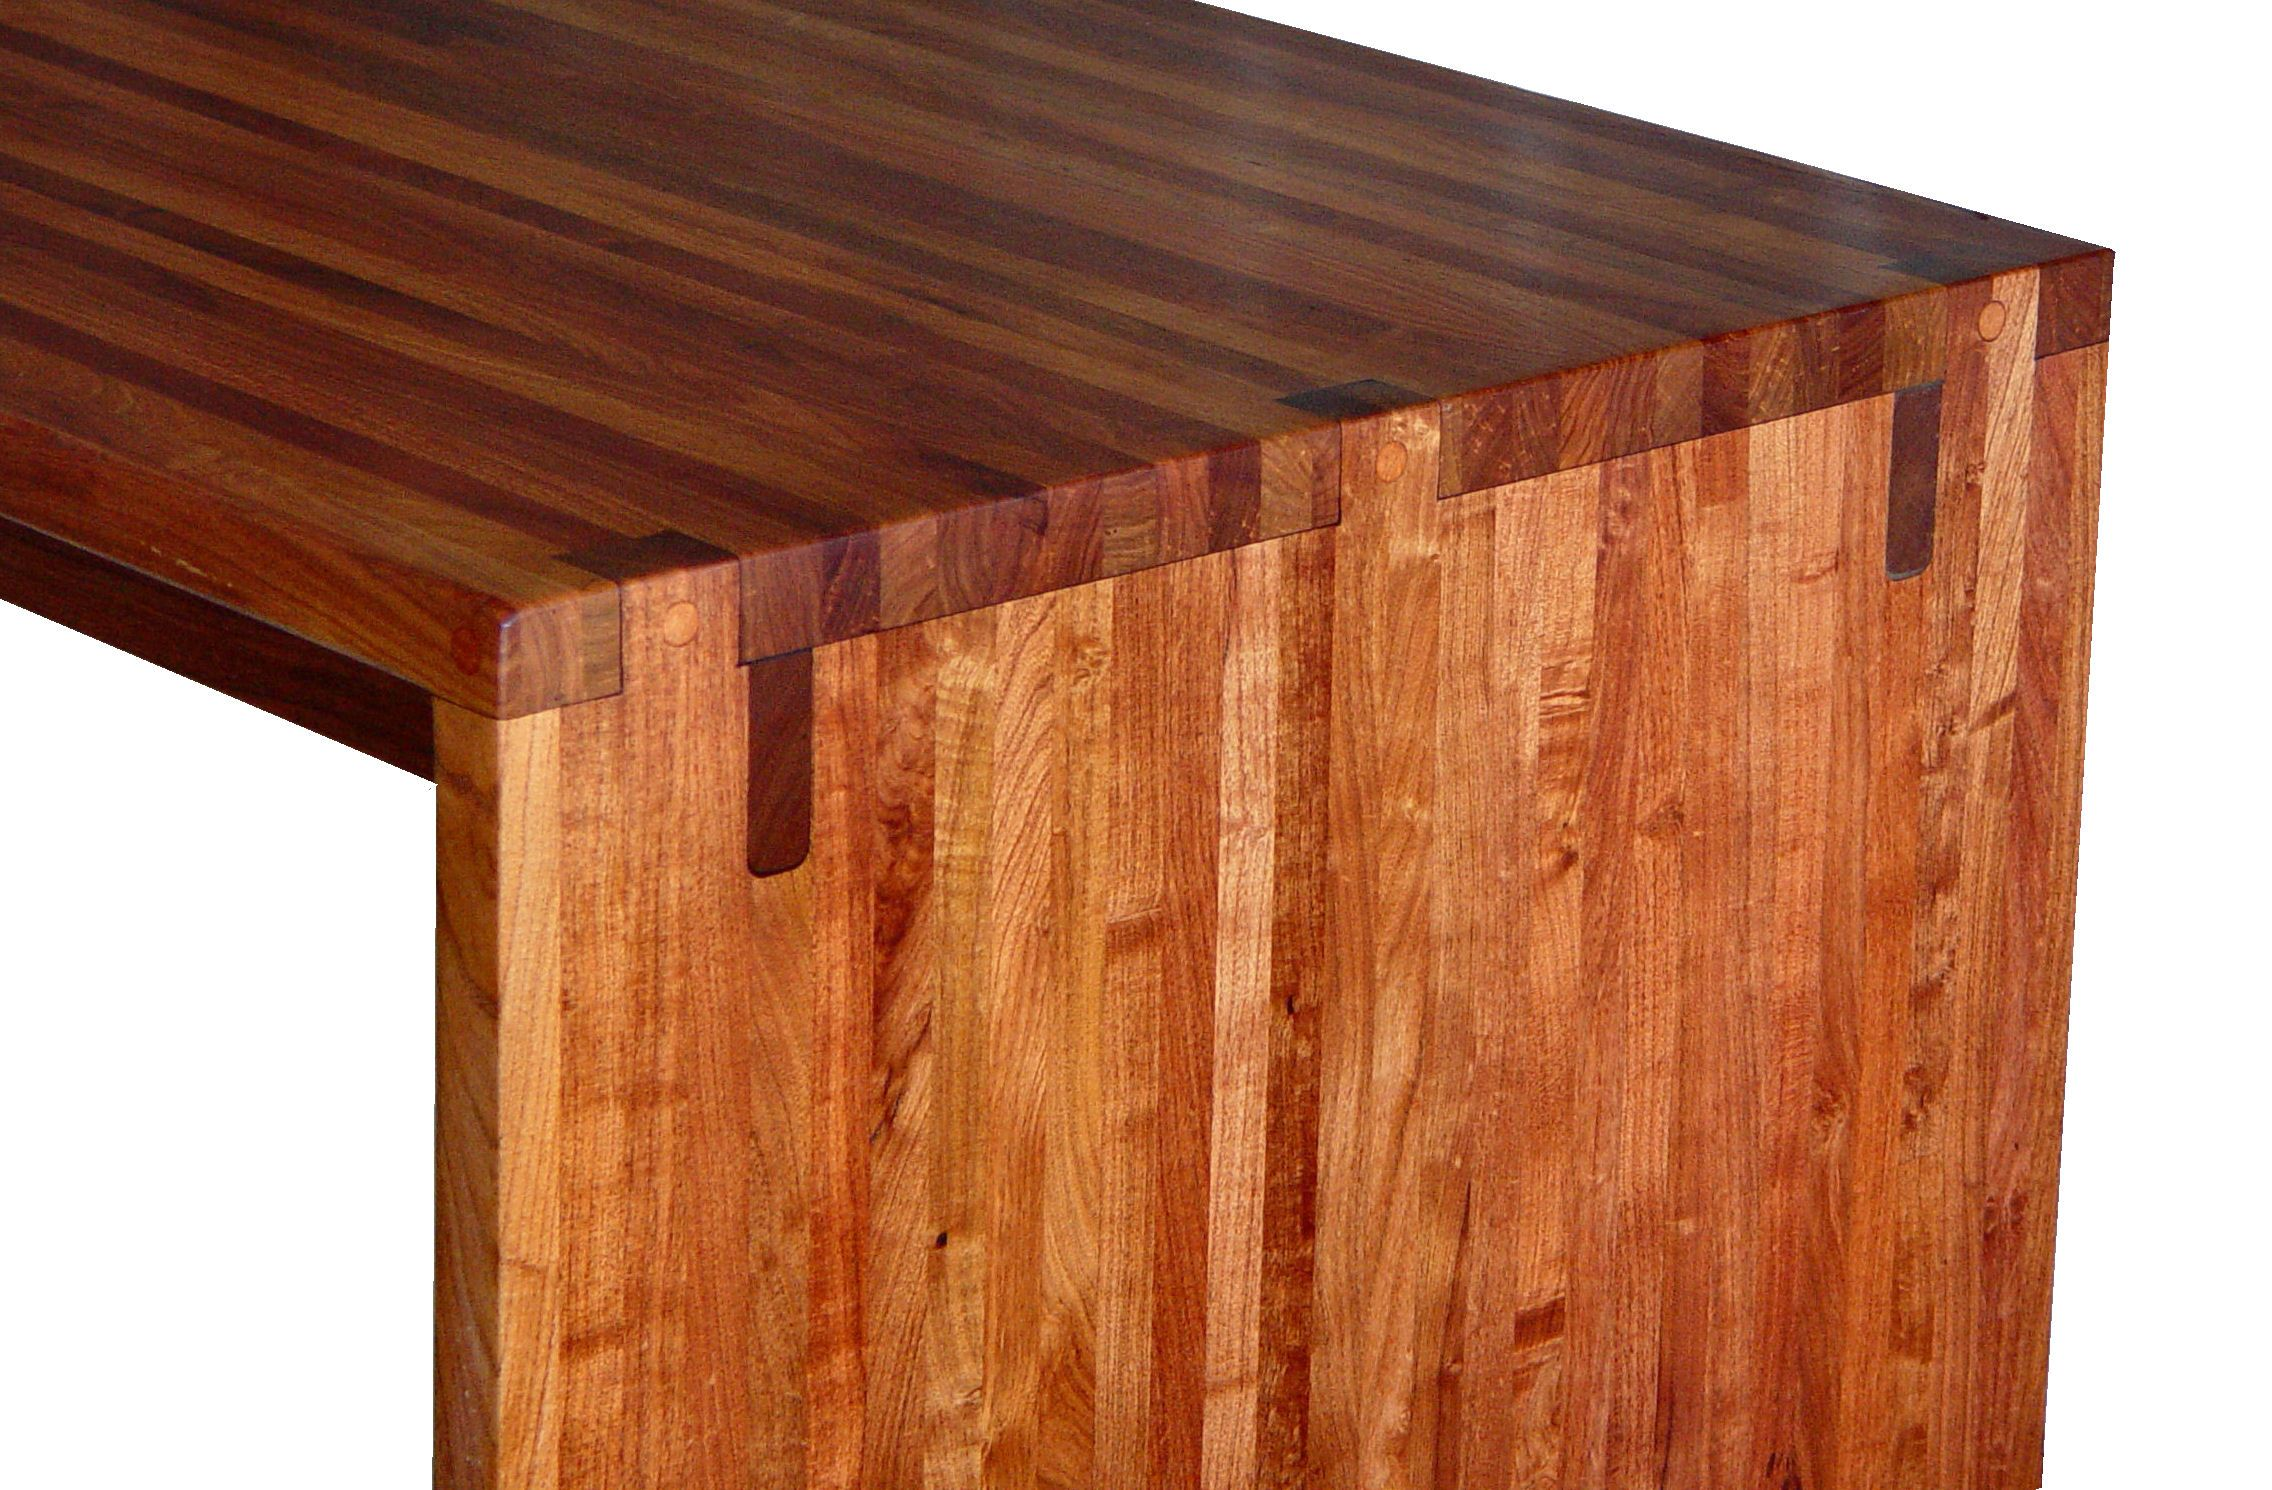 Devos custom woodworking custom contemporary eclectic for Table joints